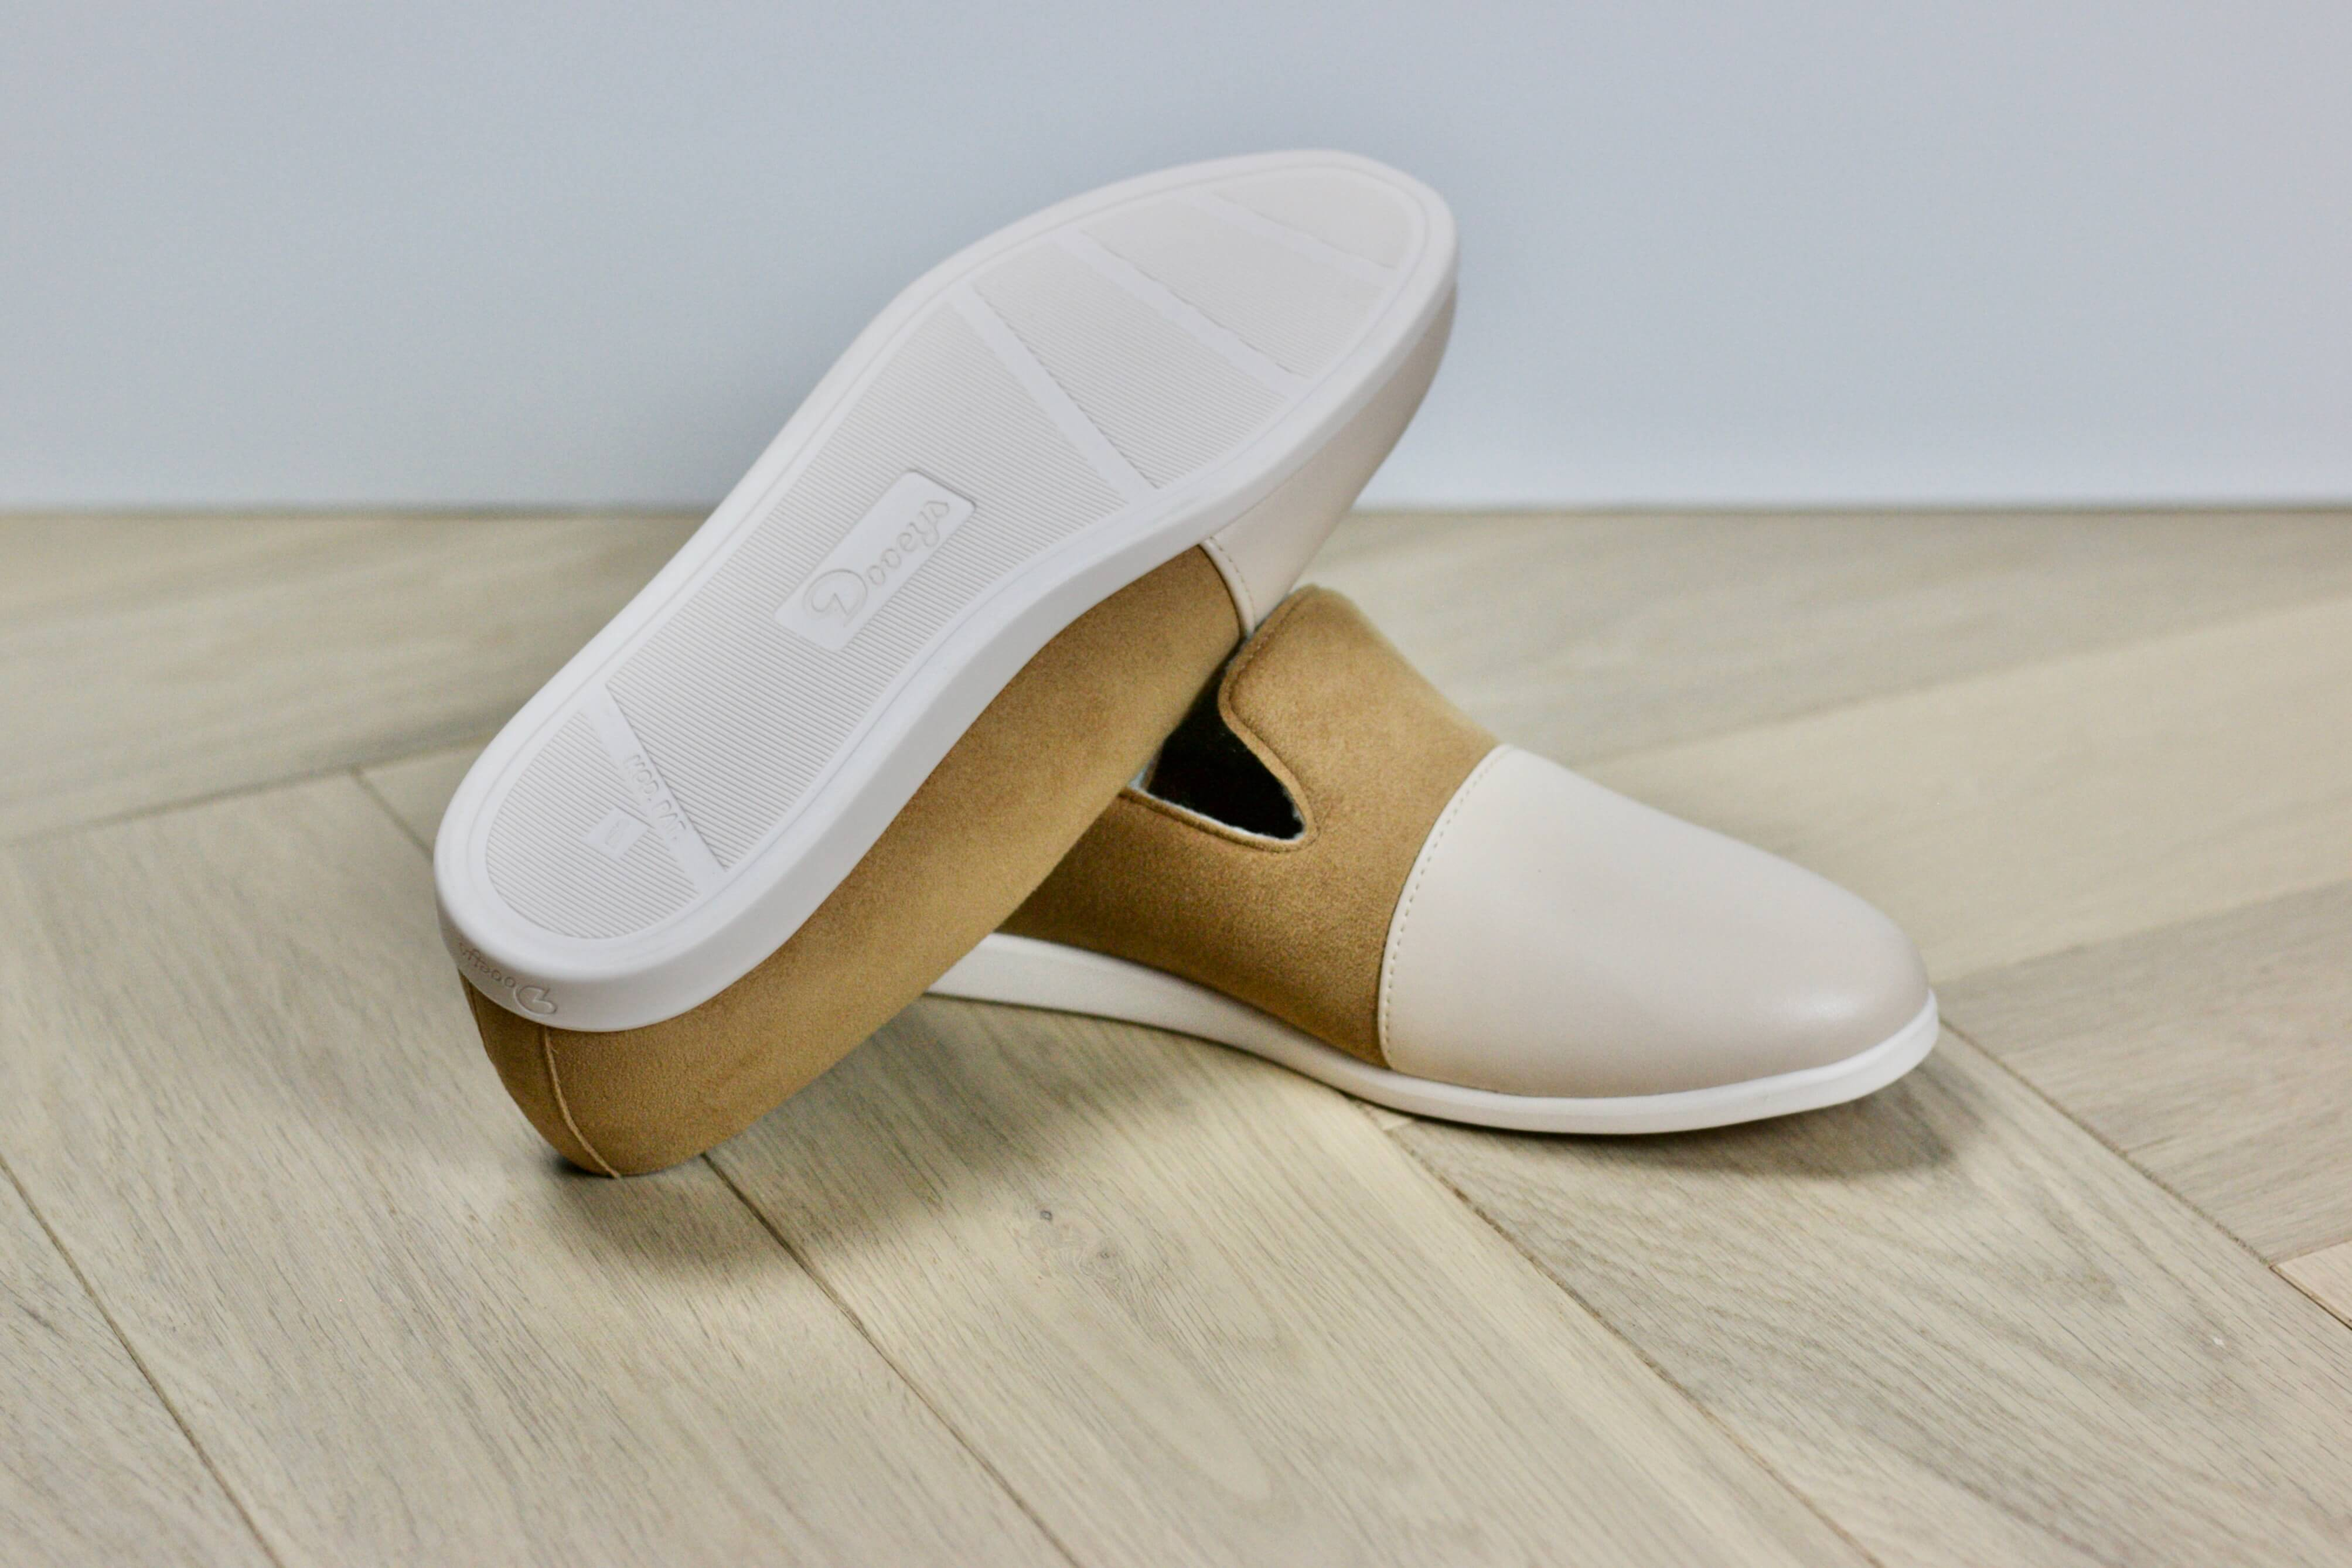 The Best House Shoes for Women - Blush / Cinnamon Loafers